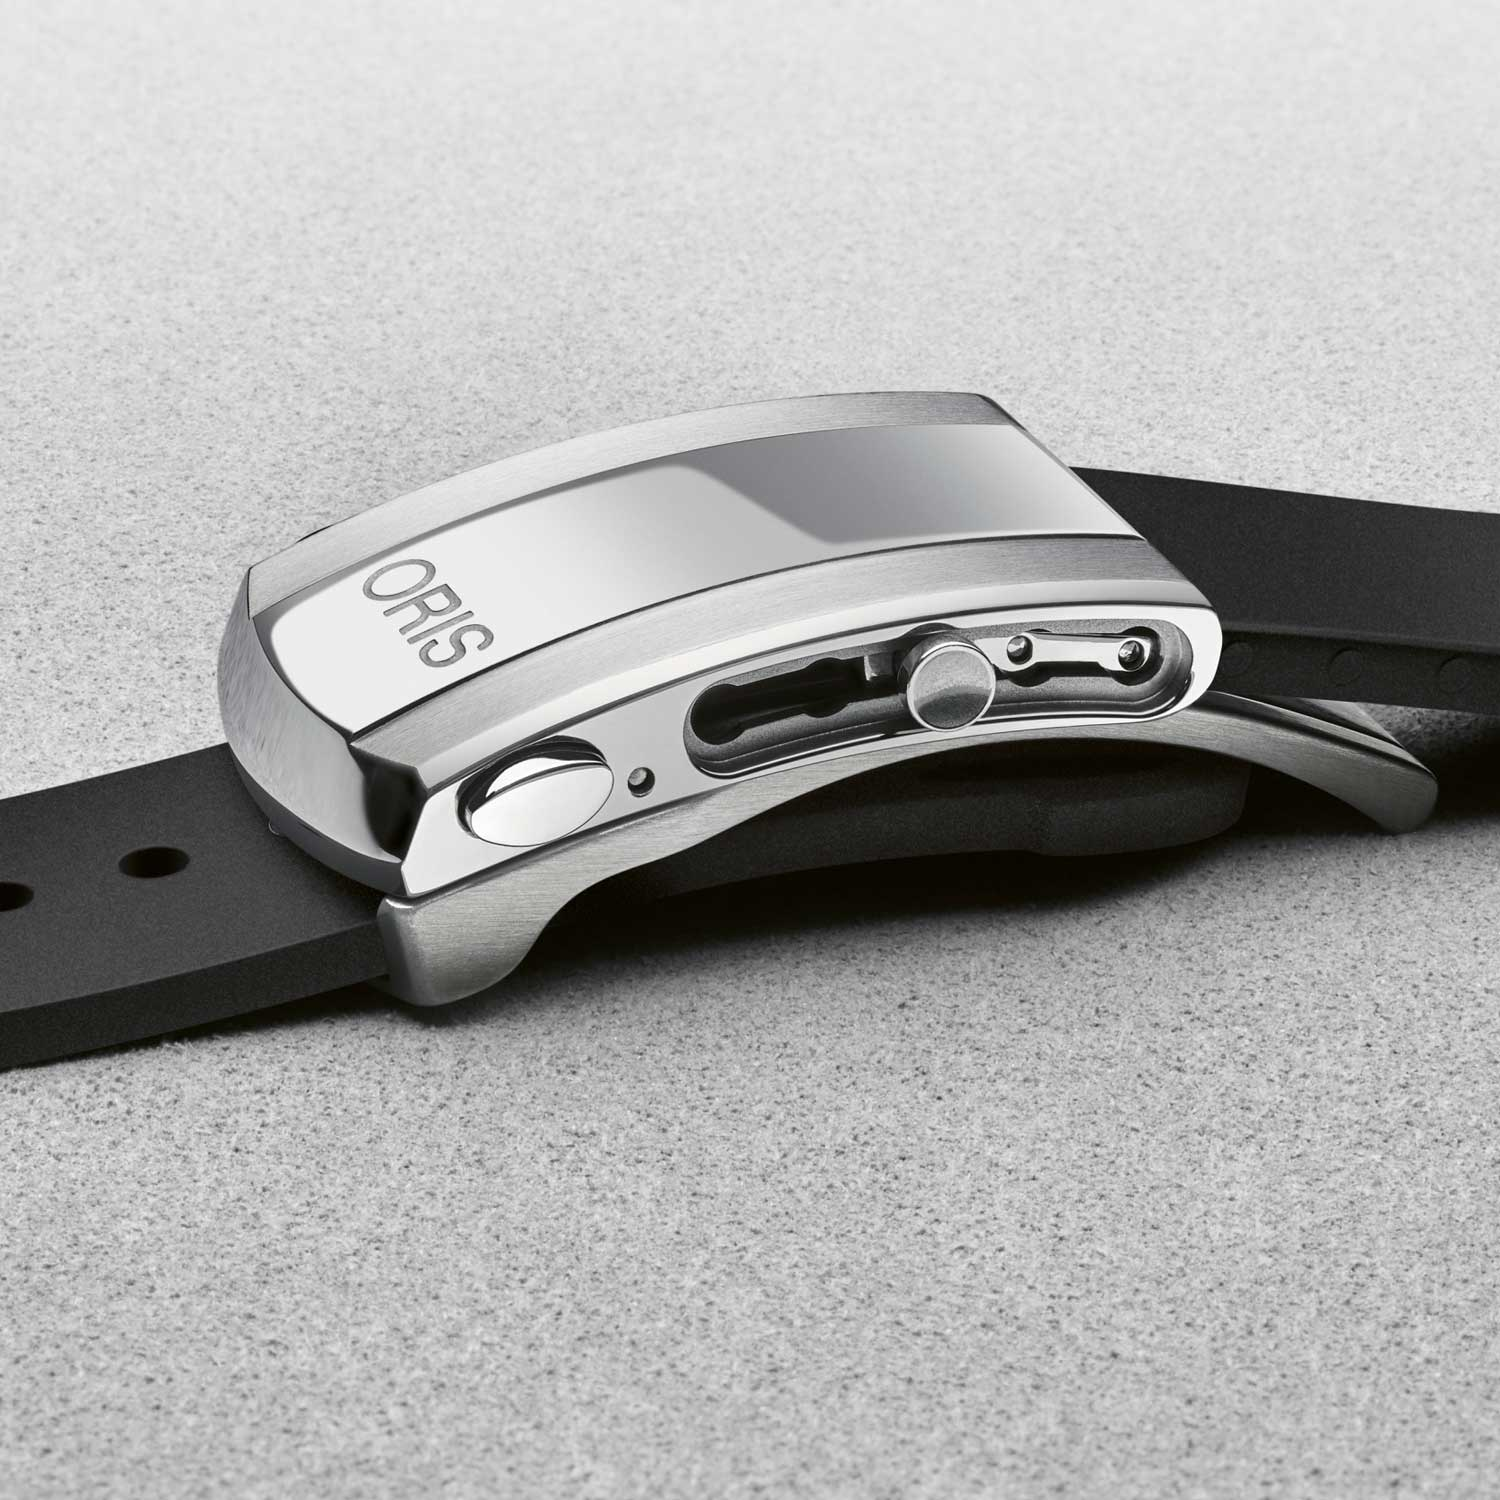 Thanks to Oris' new patented Quick Strap Change system, the wearer can now switch the stainless steel metal bracelet and rubber strap without using any tools.